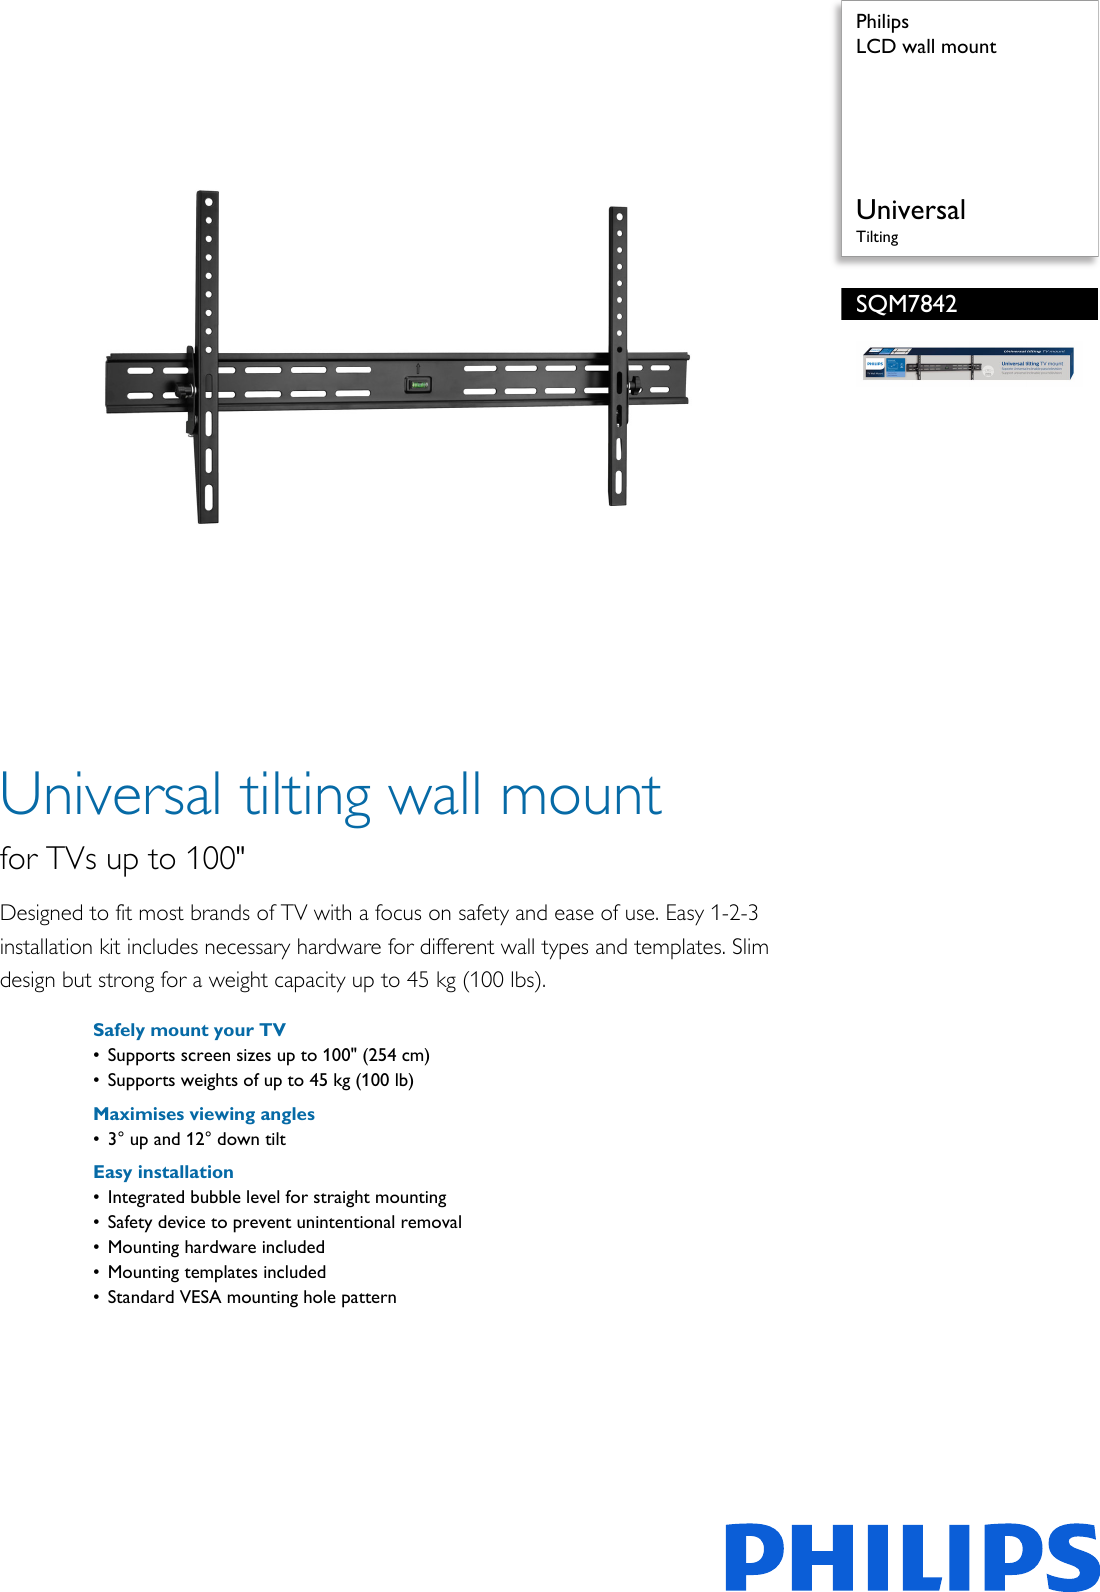 philips sqm7842 00 lcd wall mount user manual leaflet sqm7842 00 pss rh usermanual wiki Philips Smart TV 32 Philips TV Troubleshooting